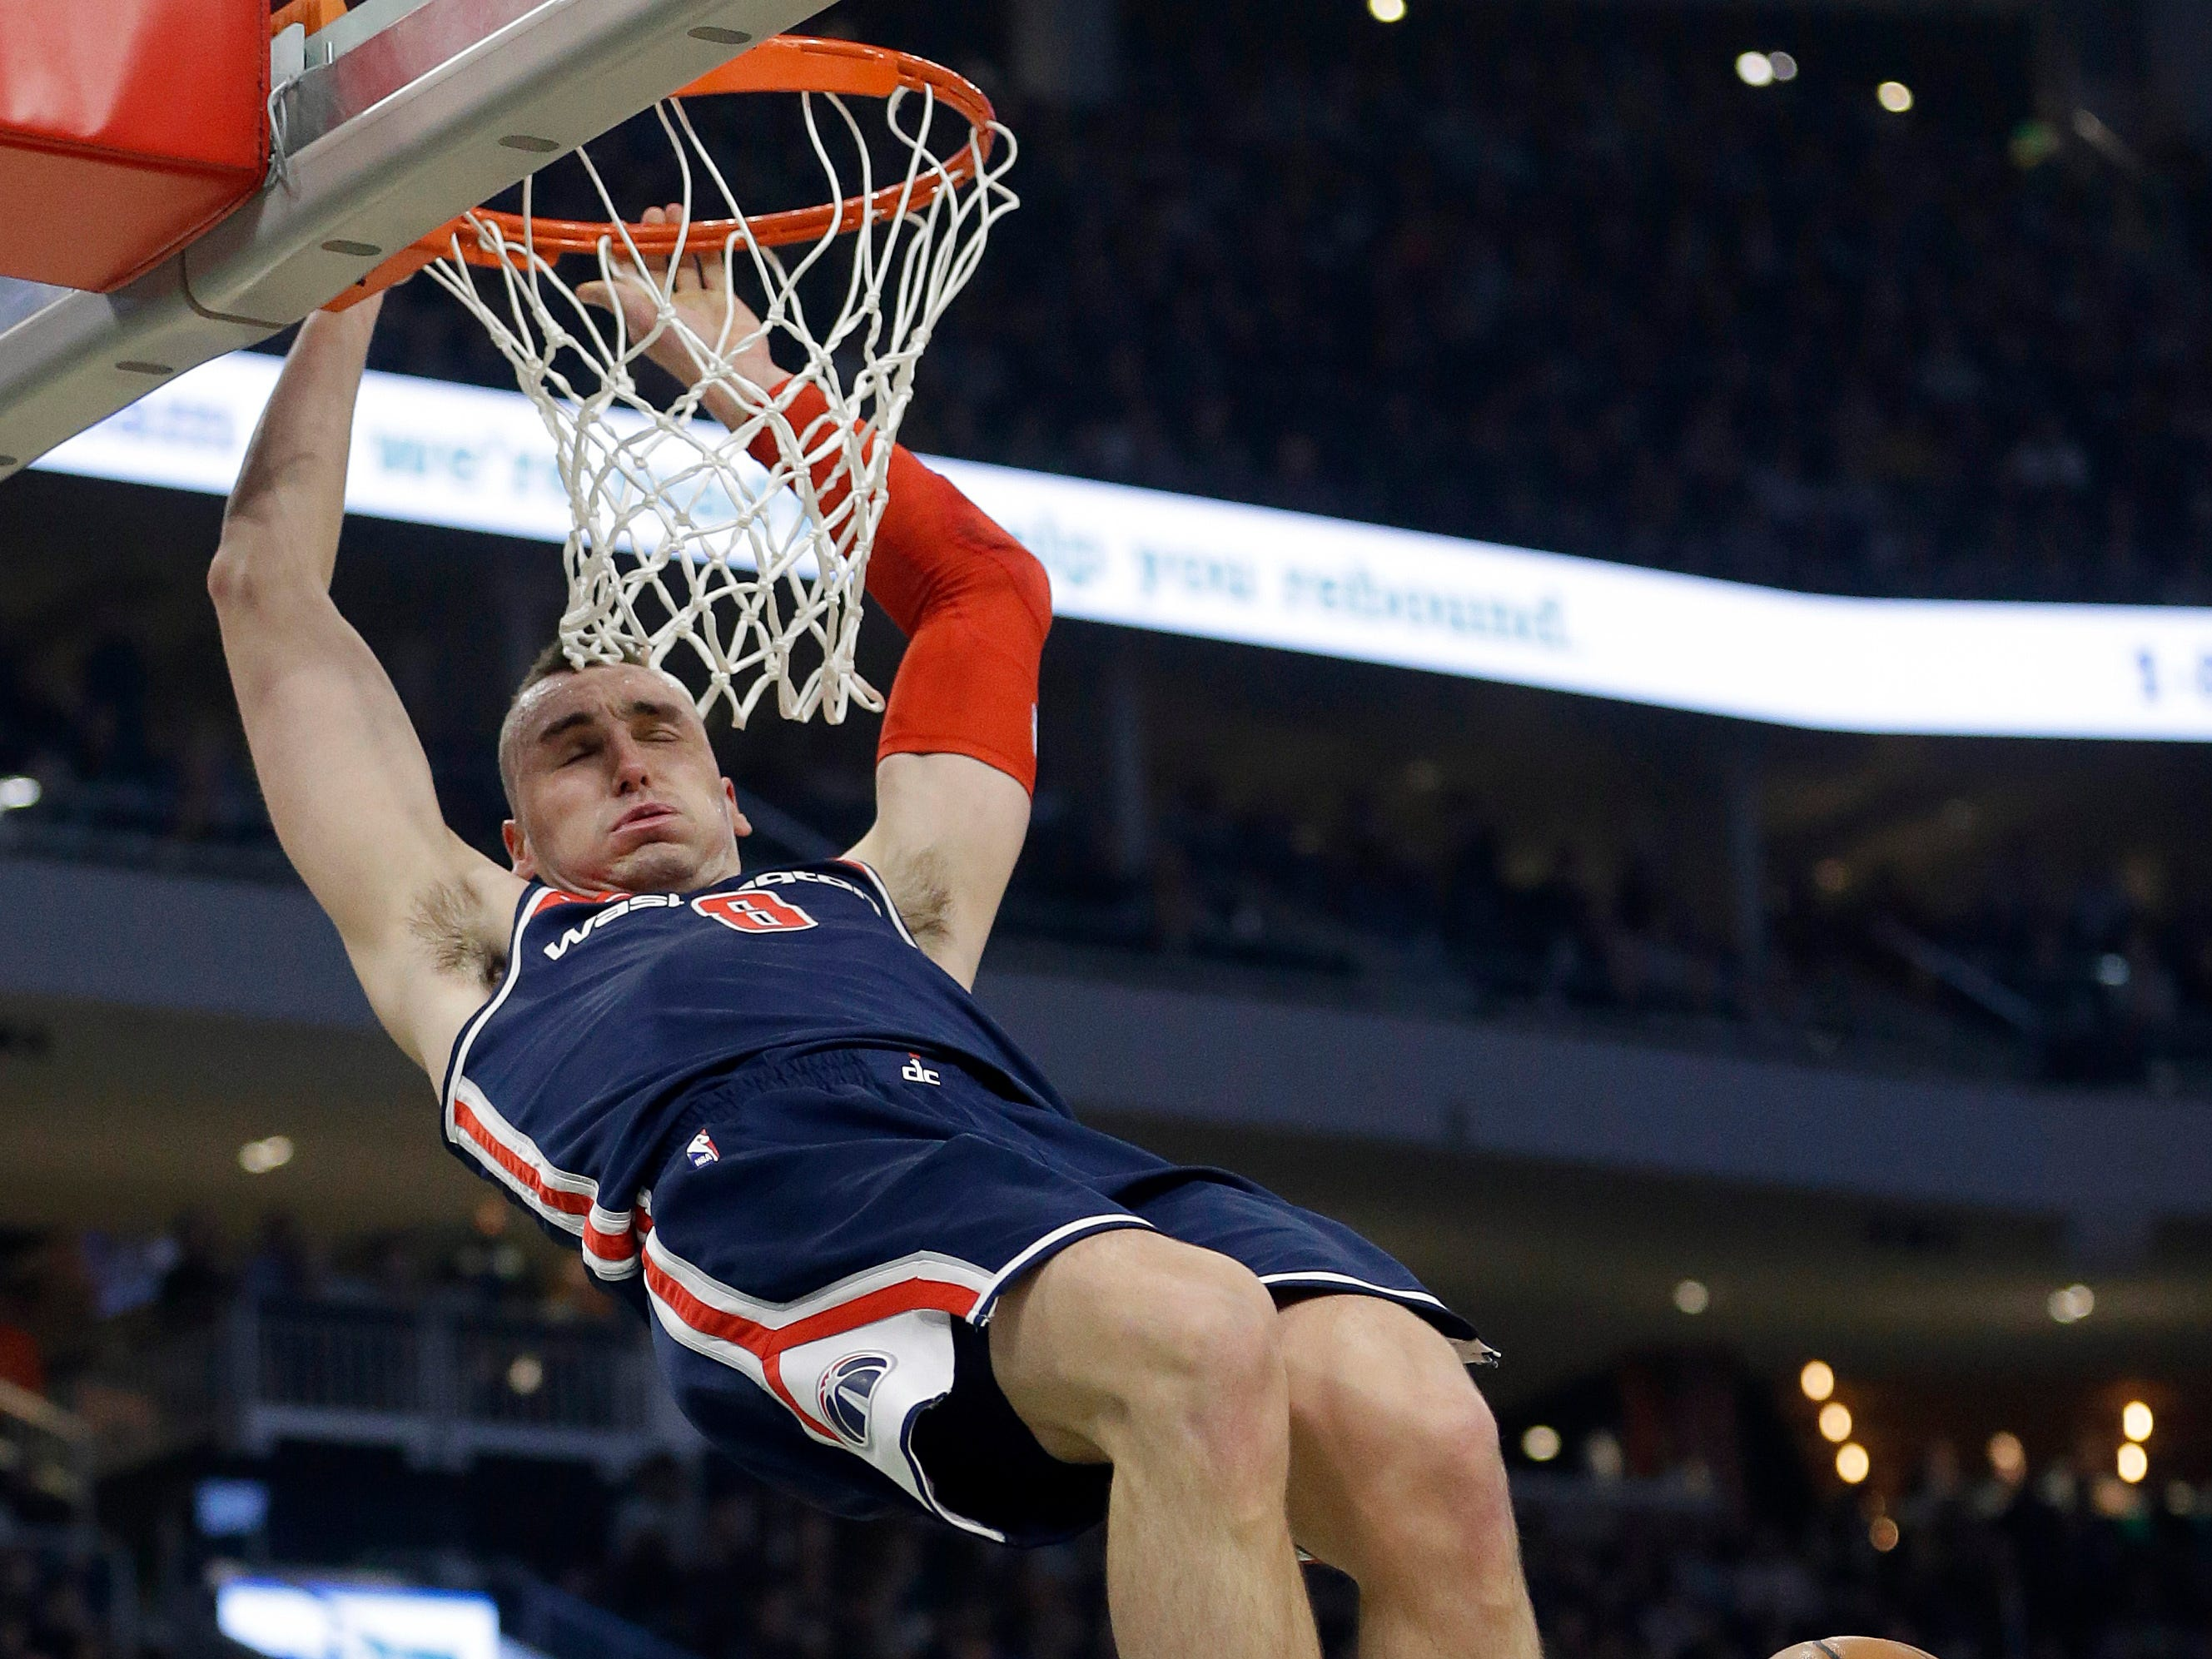 Sheboygan's own Sam Dekker of the Wizards hangs on the rim after throwing down a dunk against the Bucks during the first half on Wednesday.